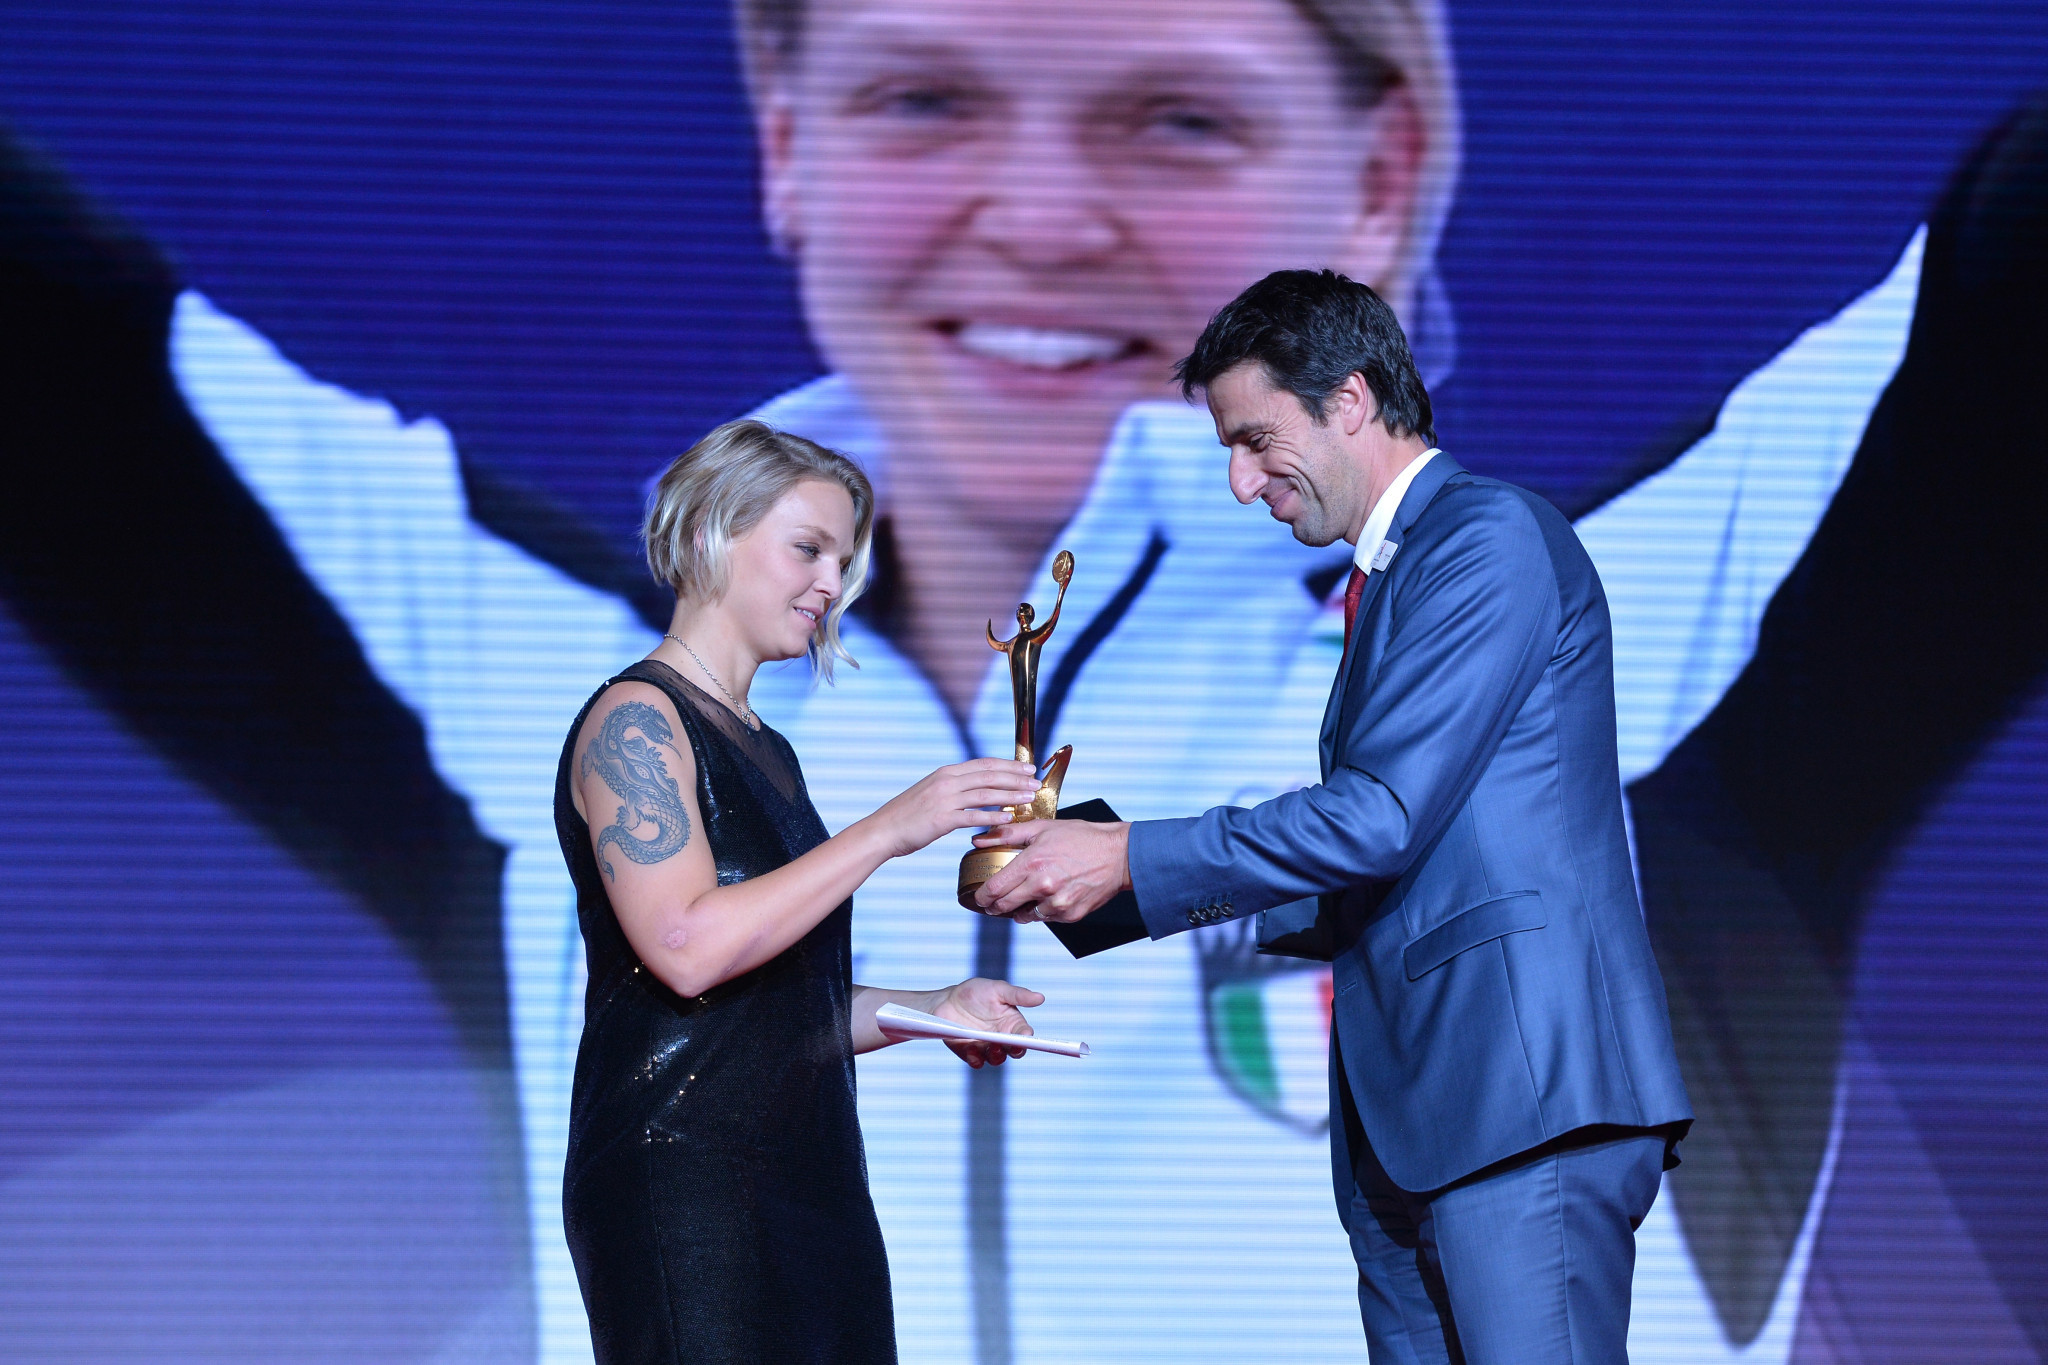 Italy's Arianna Fontana won the best female athlete honour for Pyeongchang 2018 ©Getty Images